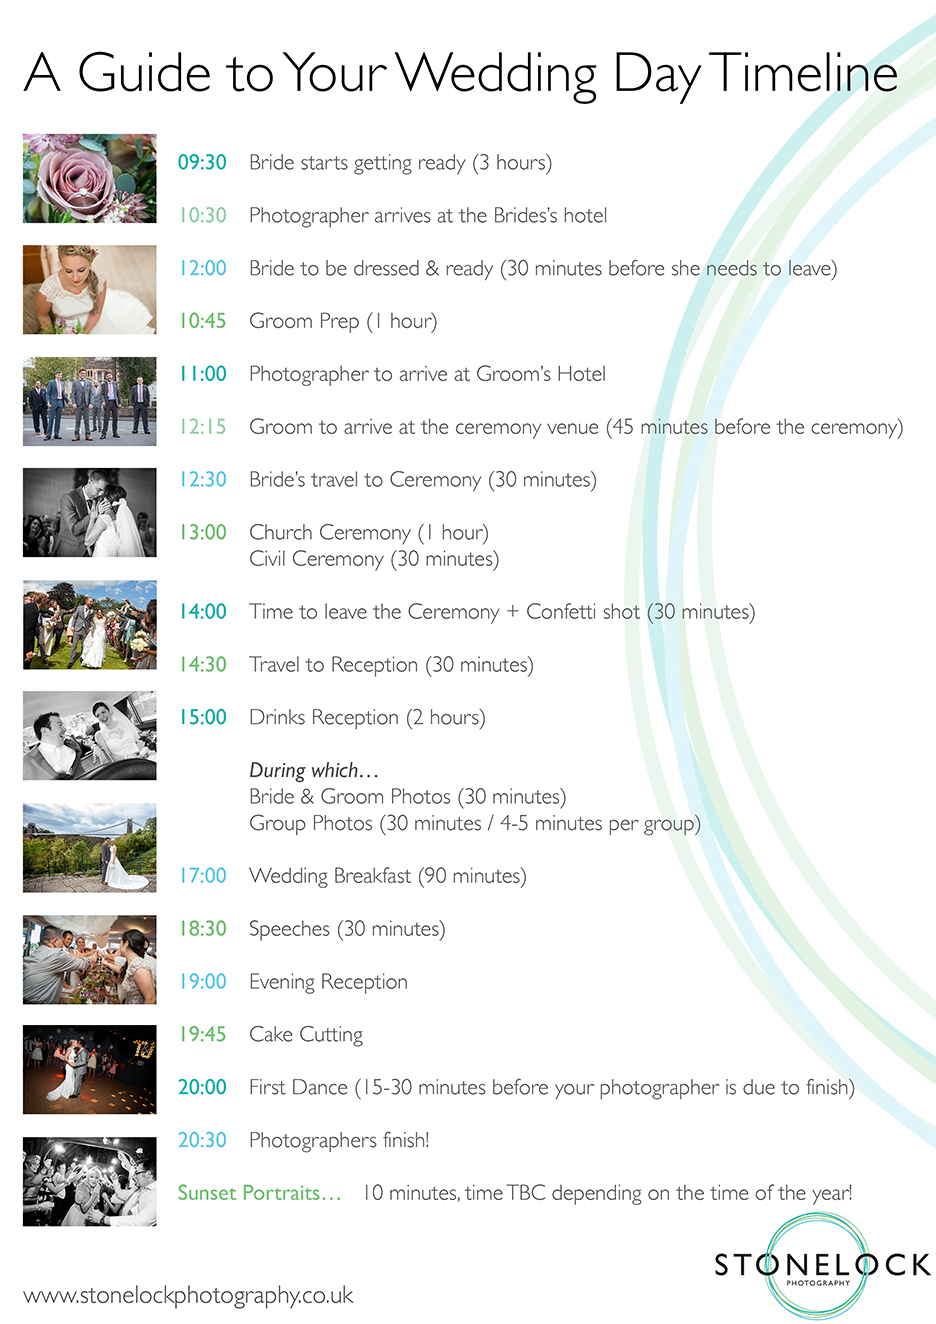 A Guide to your Wedding Day Timeline by Stonelock Photography